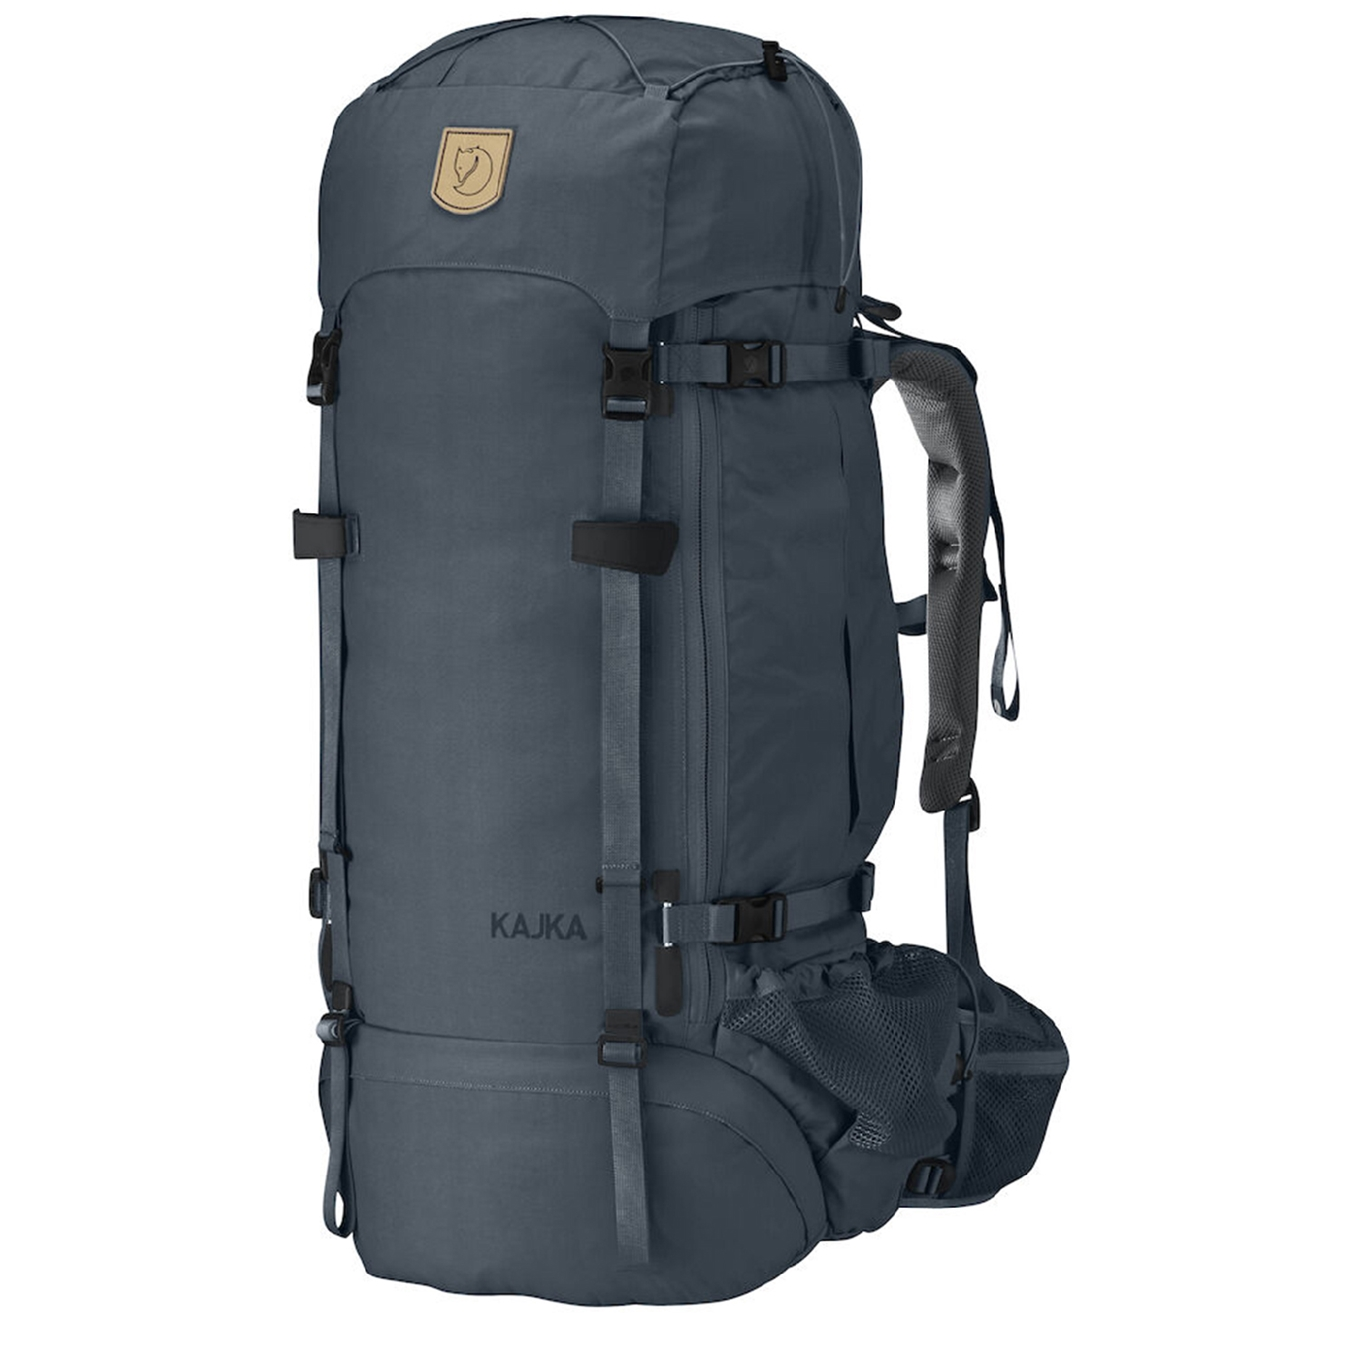 Fjallraven Kajka 65 graphite backpack